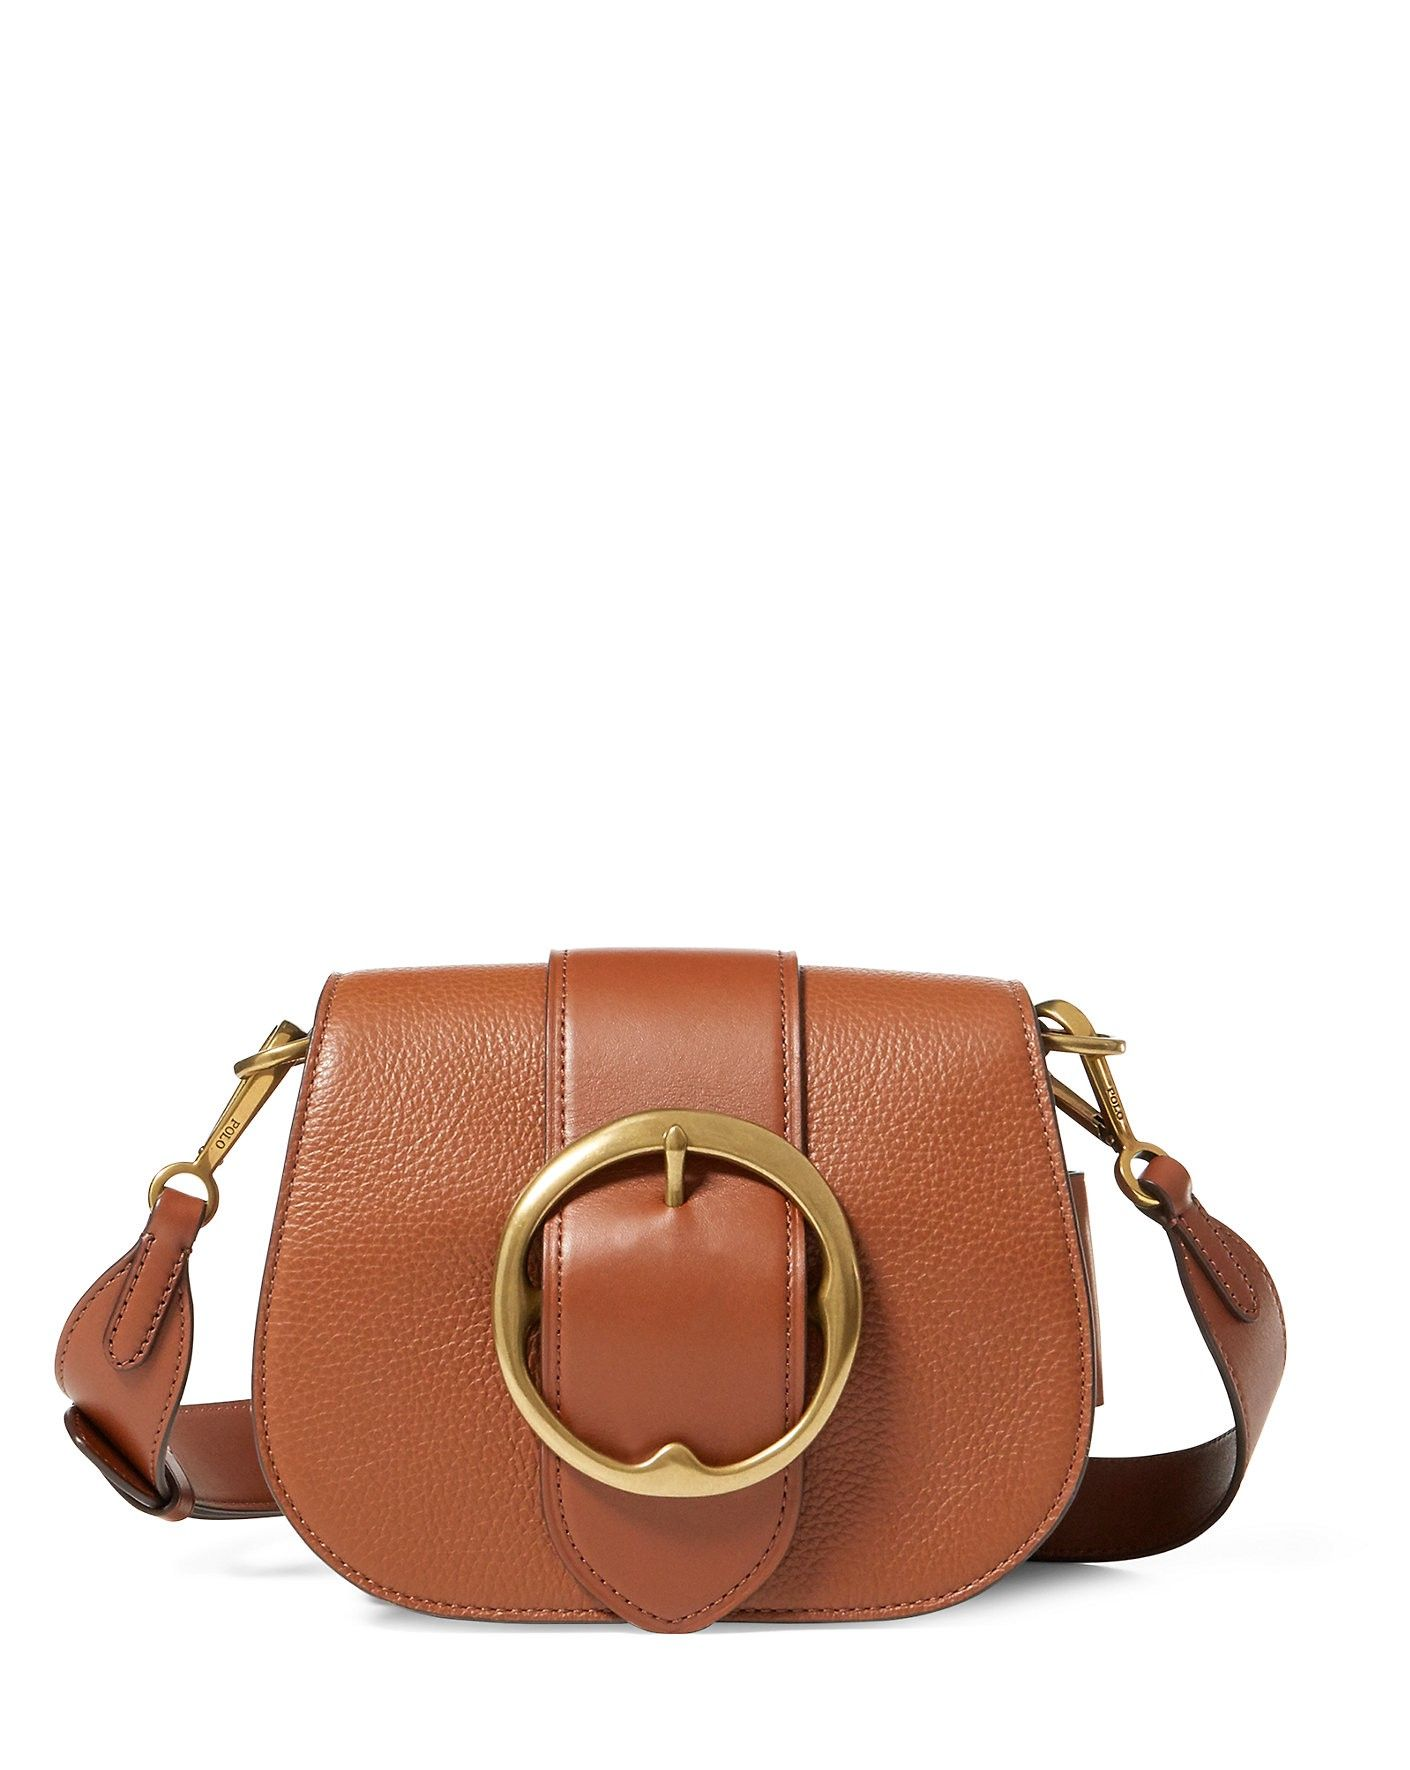 f232922e62be RALPH LAUREN Polo Ralph Lauren Pebbled Leather Lennox Bag.  ralphlauren   bags  shoulder bags  leather  crossbody  cotton